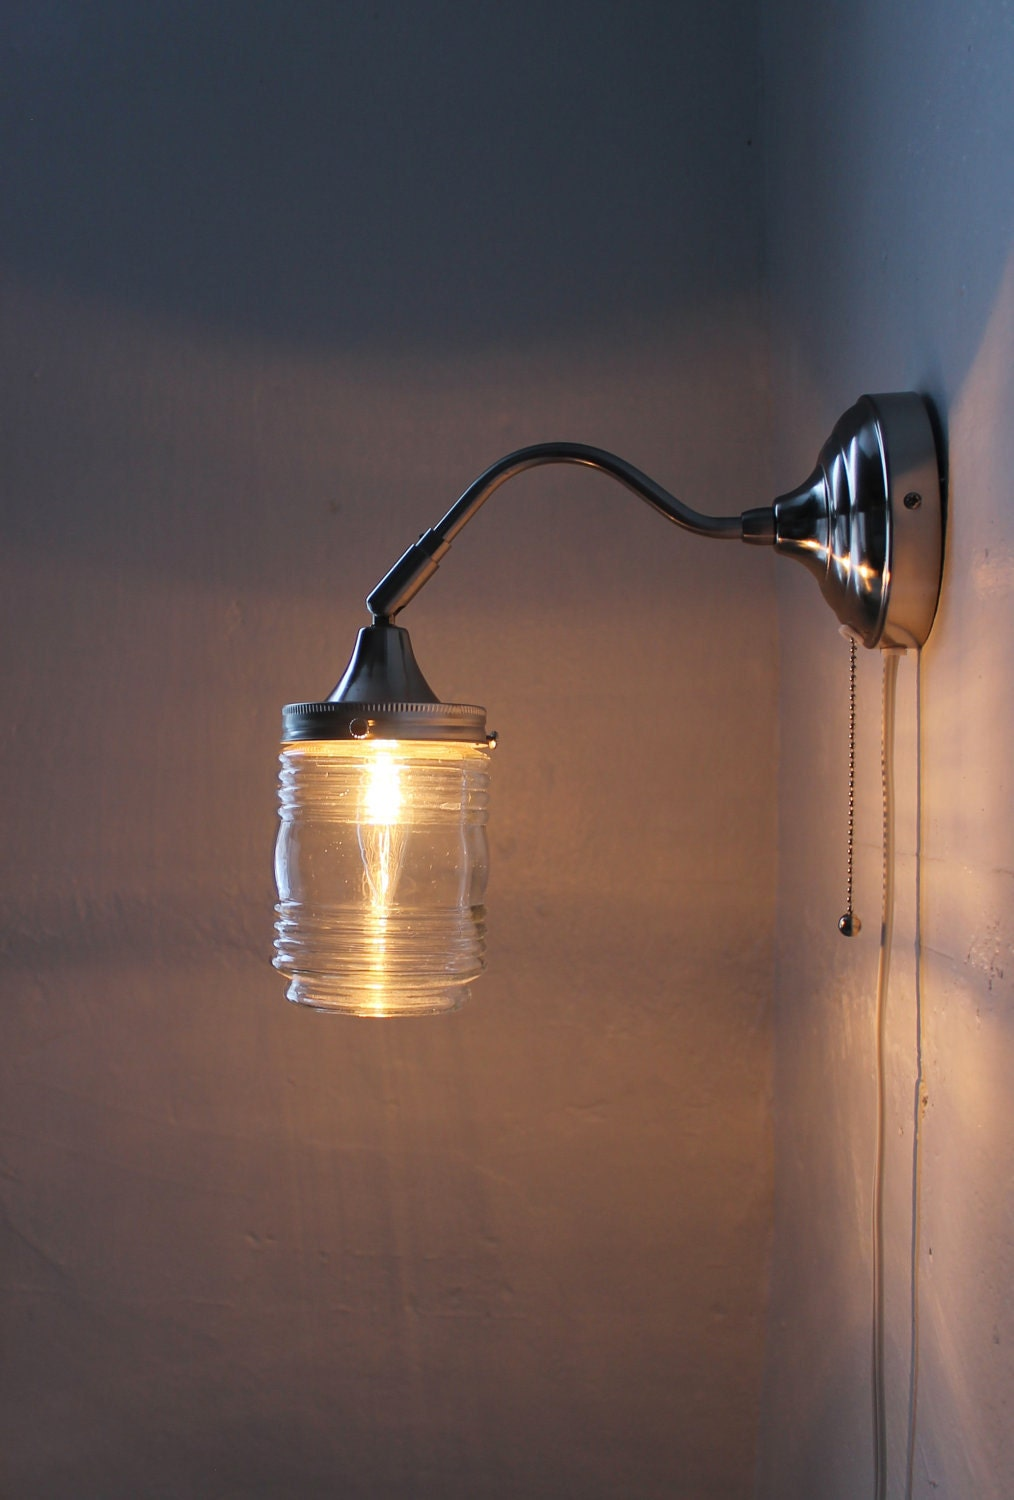 City Lights Gooseneck Wall Sconce Lamp Industrial Stainless